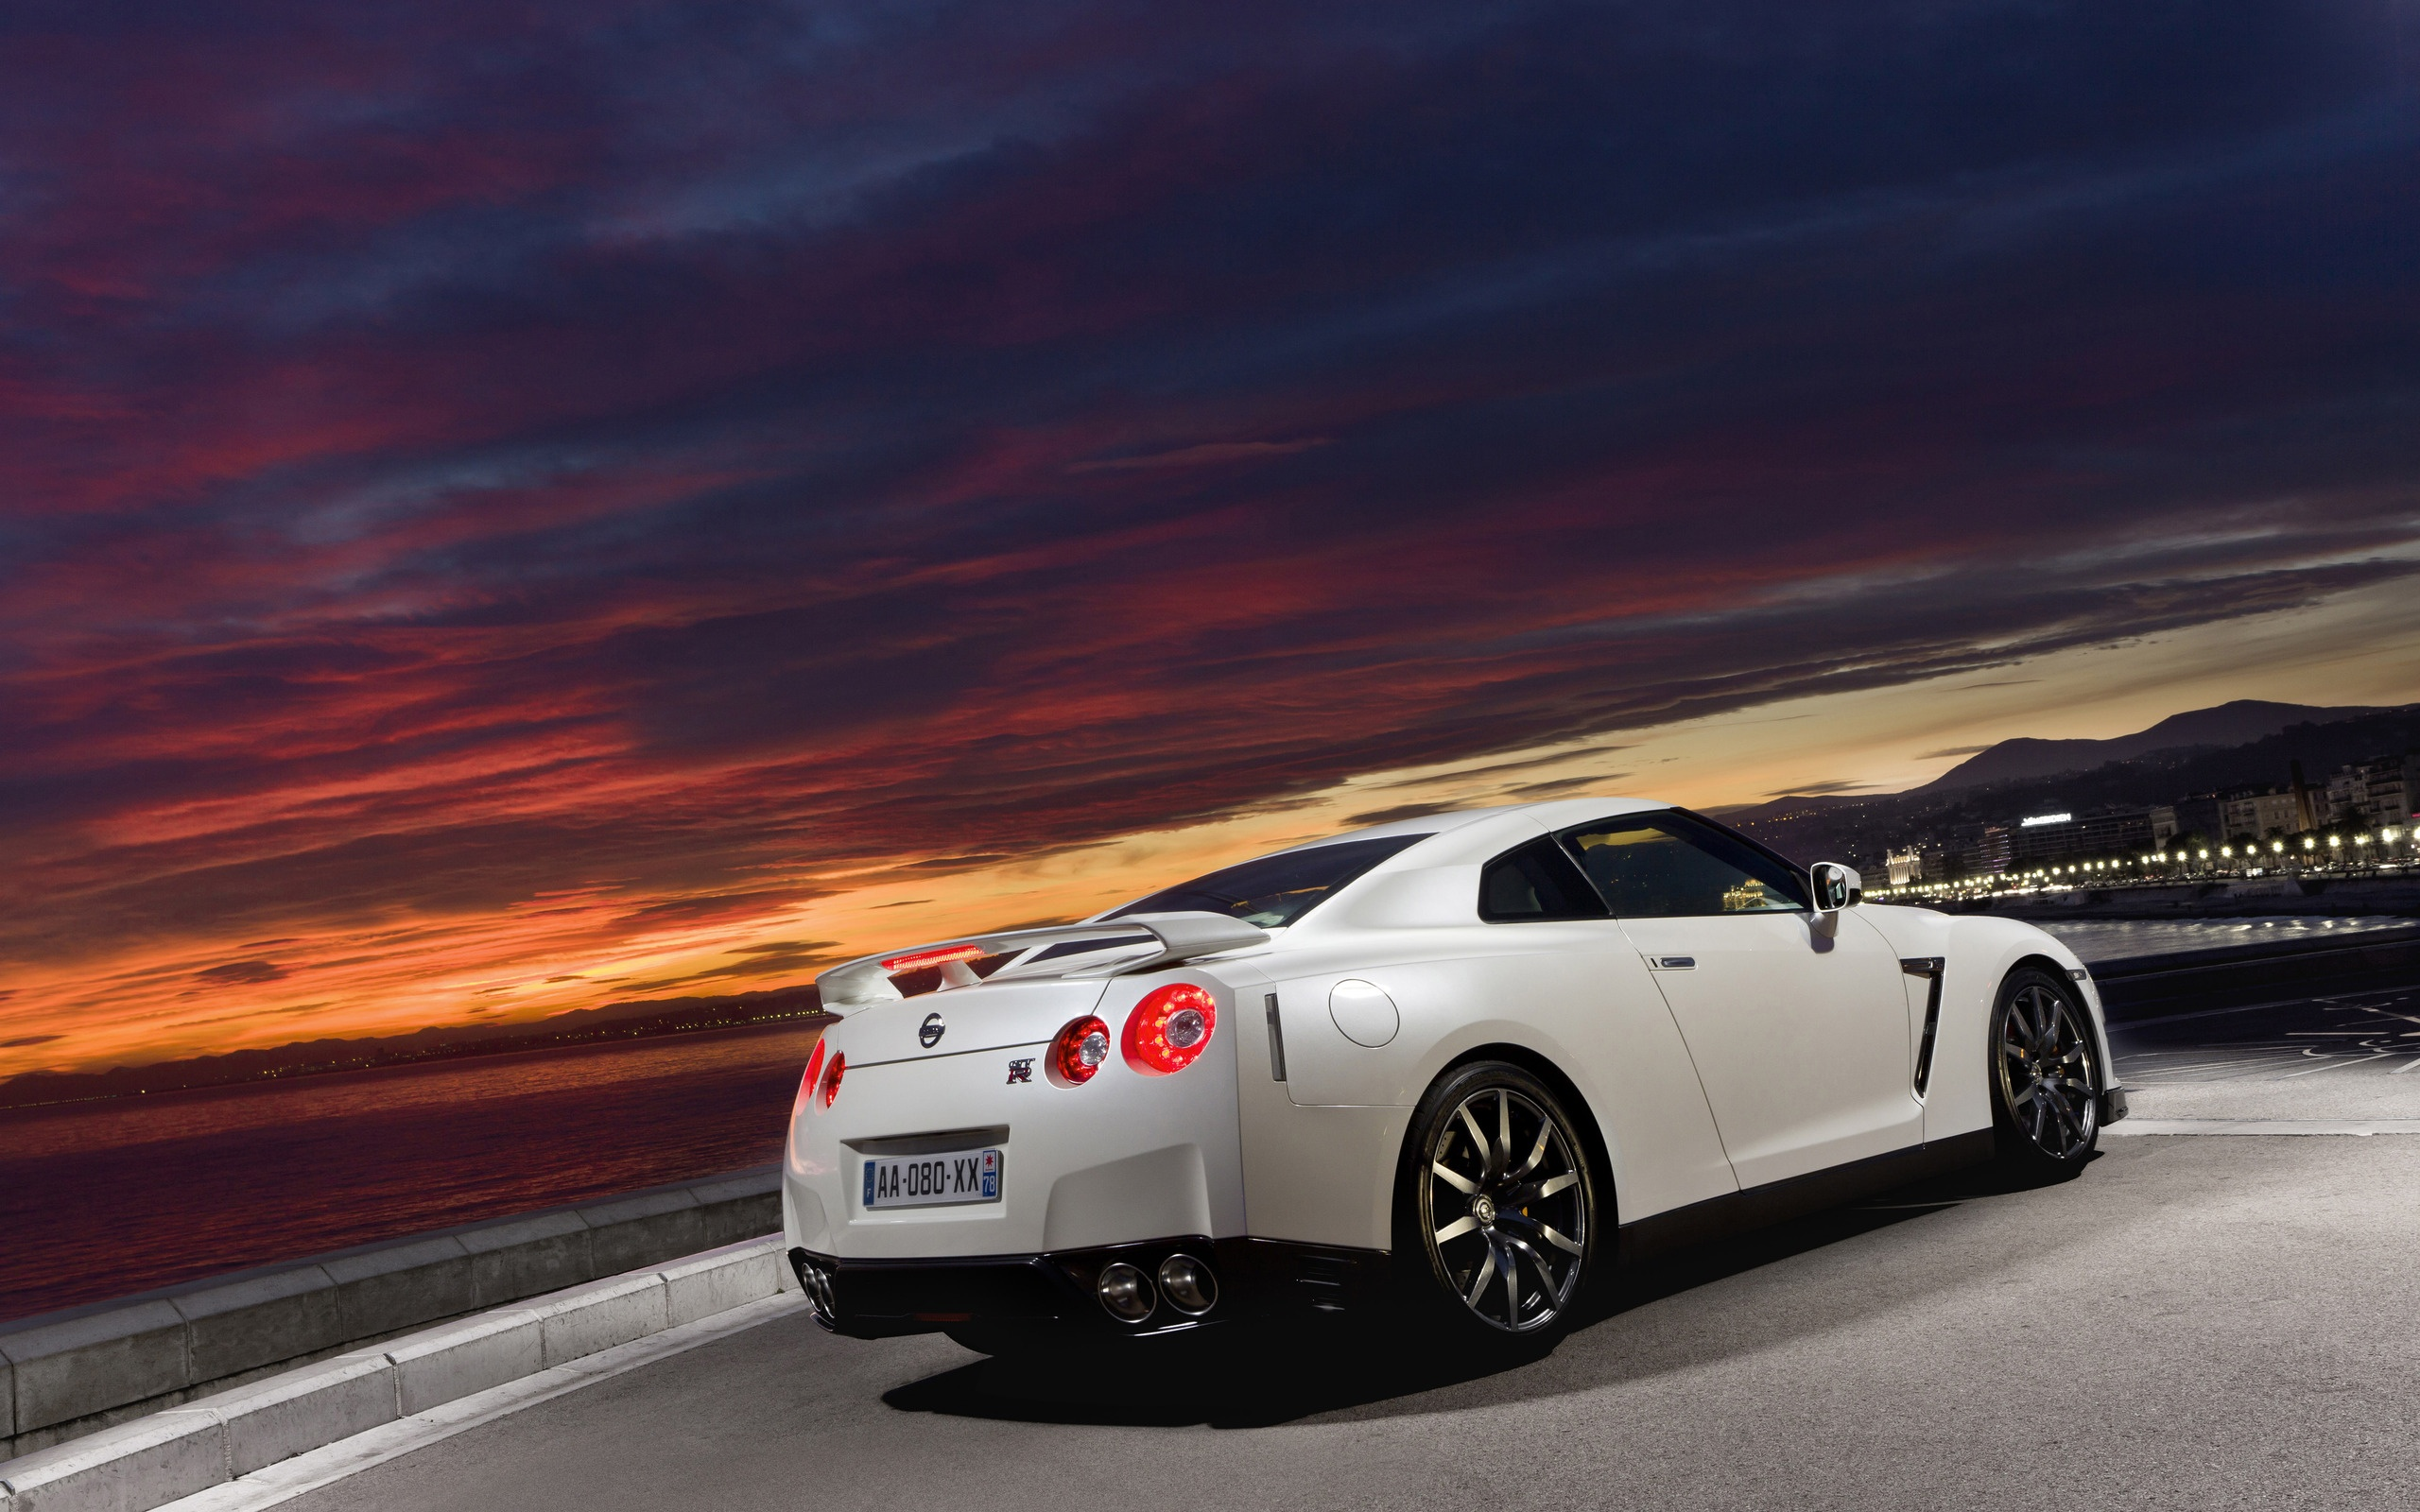 nissan gt r egoist wallpapers - 2560x1600